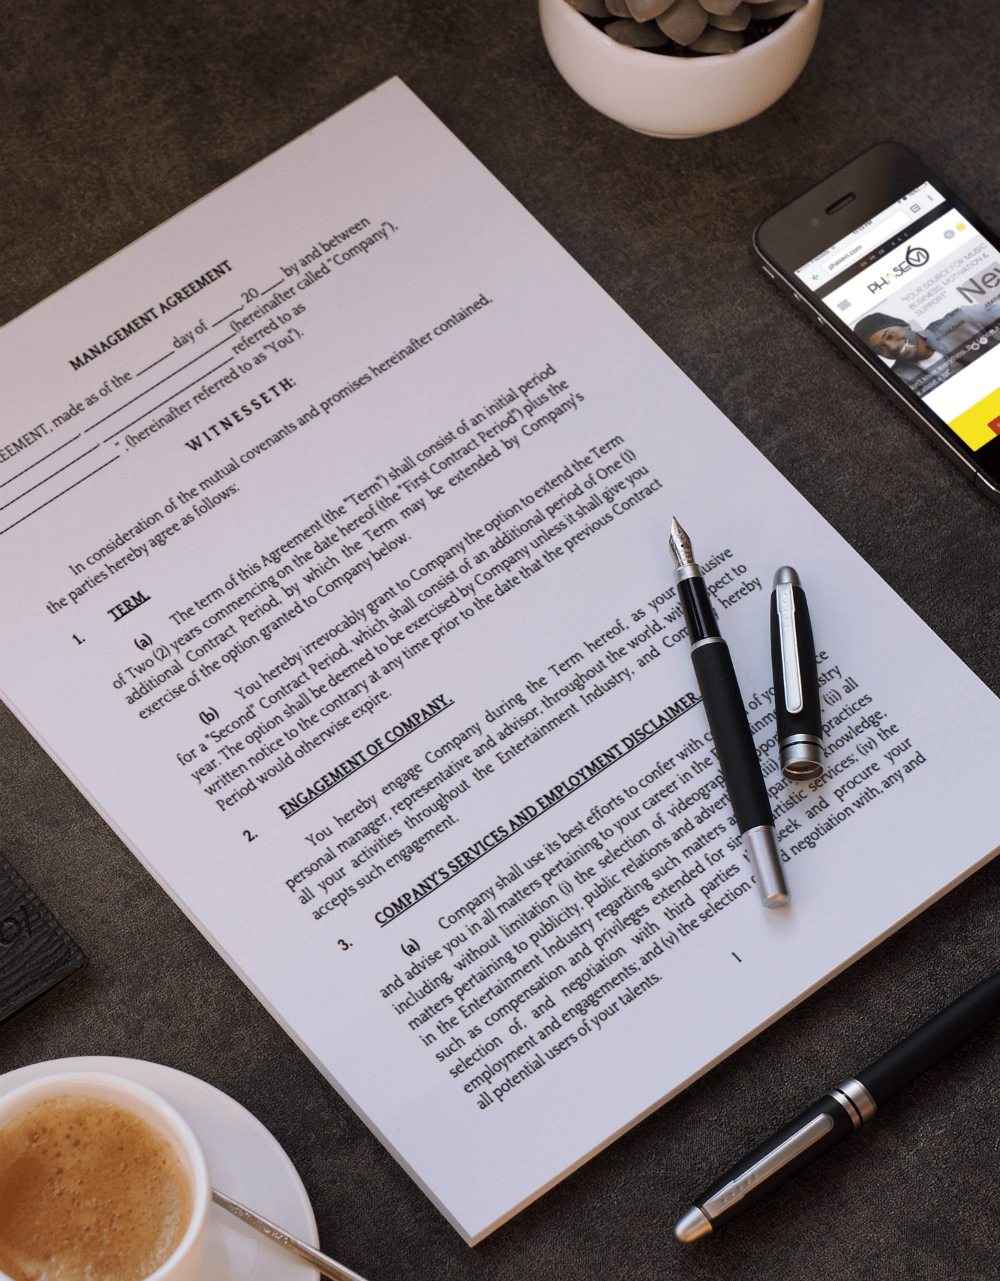 Writing Contract Agreement Management Agreement Contract1hr Video Explanationwritten Explanation